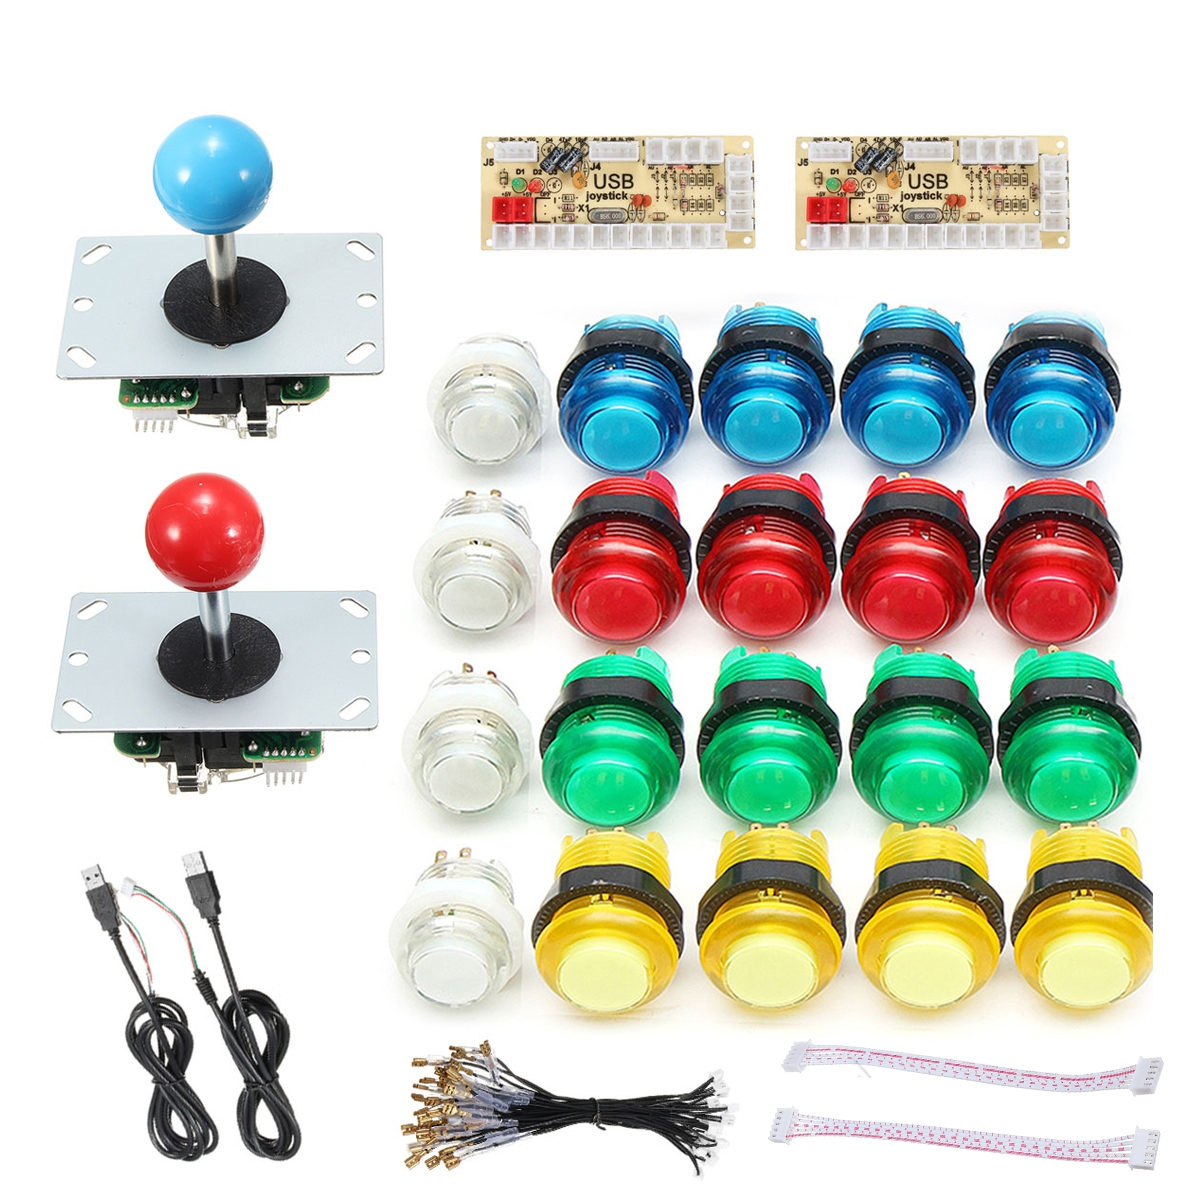 2 Players DIY Arcade Joystick Kits With 20 LED Arcade Buttons + 2 Joysticks + 2 USB Encoder Kit + Cables Joystick Arcade Set(China)